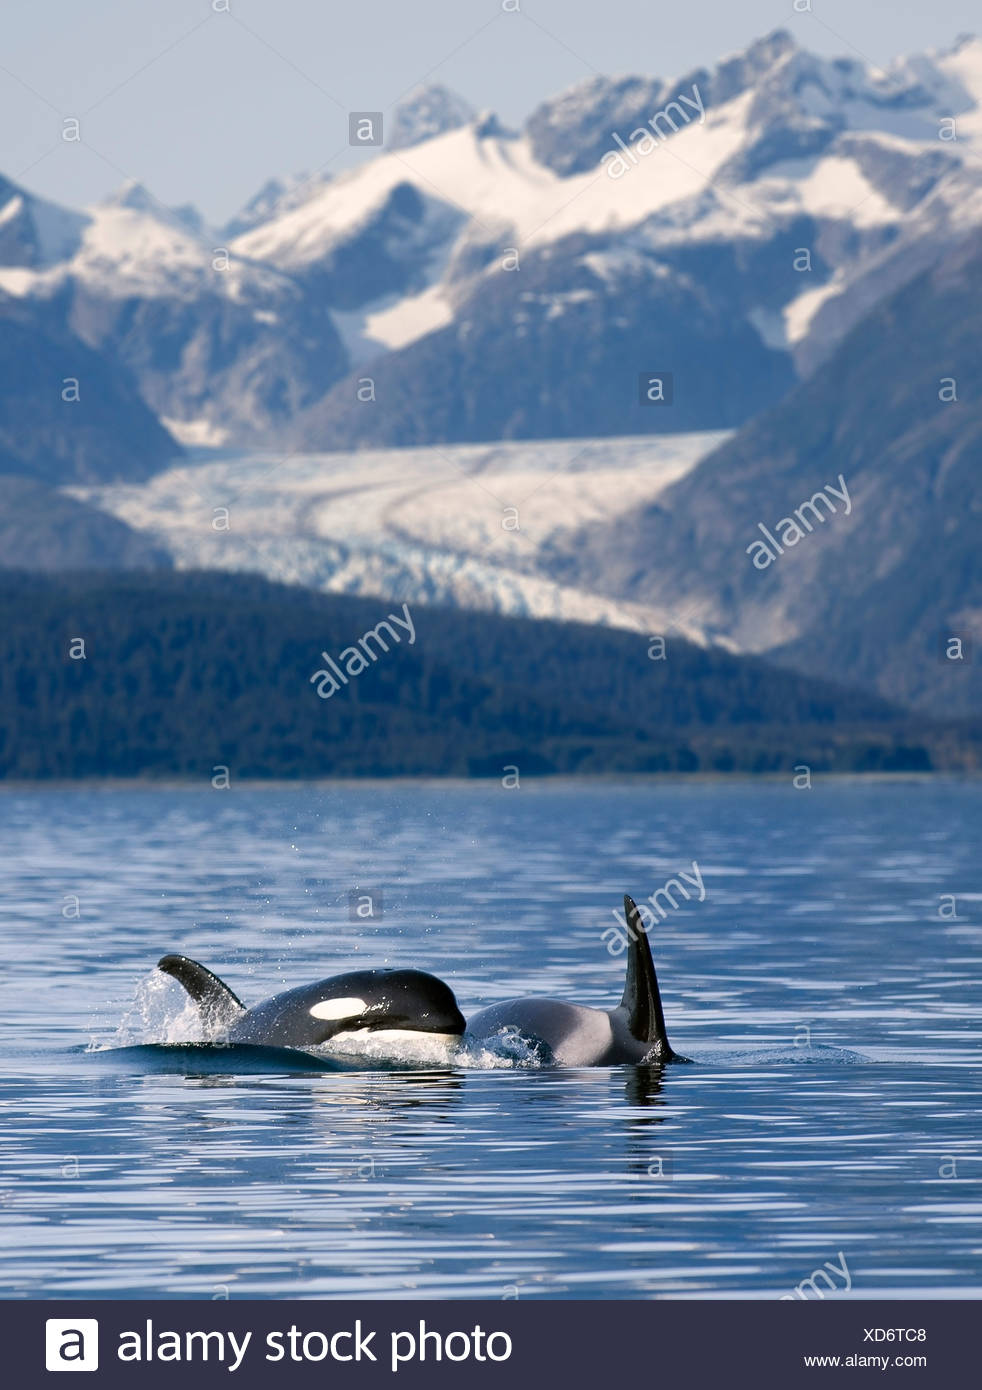 Pod of Orca whales surfacing in Favorite Passage of the Lynn Canal, Southeast Alaska - Stock Image